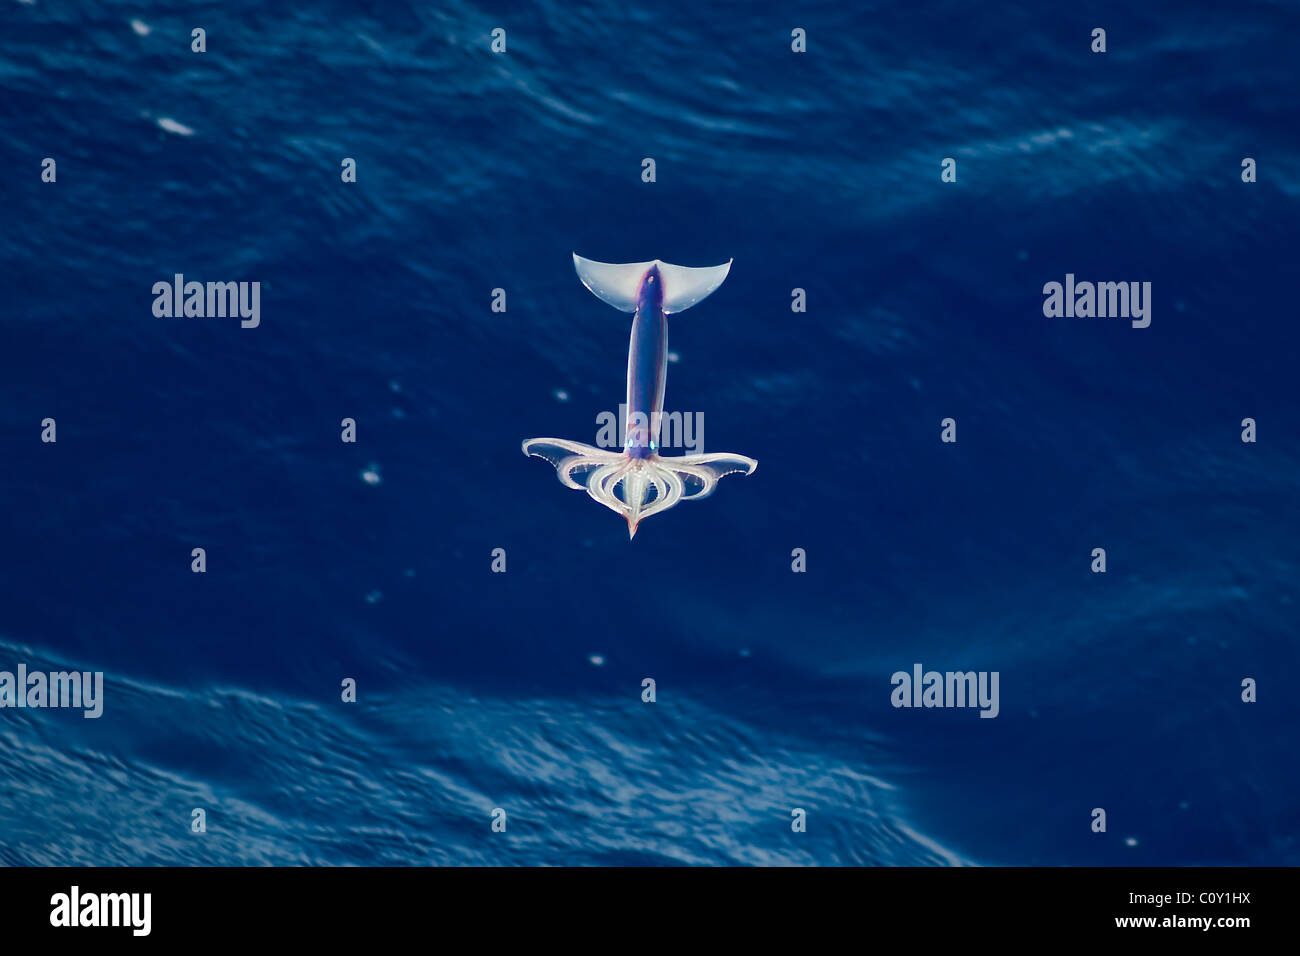 Very rare image of a Neon Flying Squid (Ommastrephes bartramii) in mid-air, South Atlantic Ocean. - Stock Image